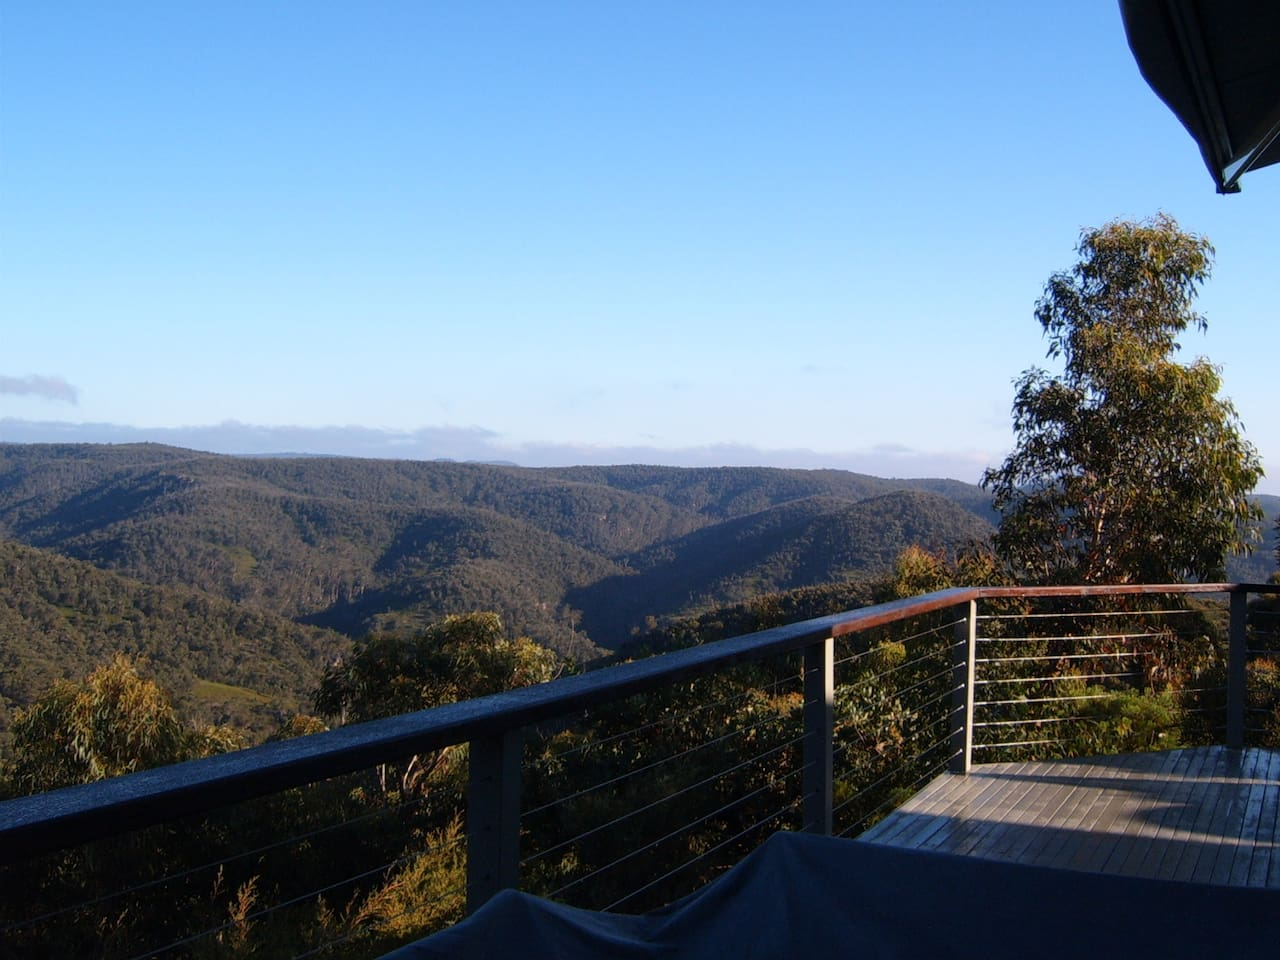 Day time vista from expansive deck